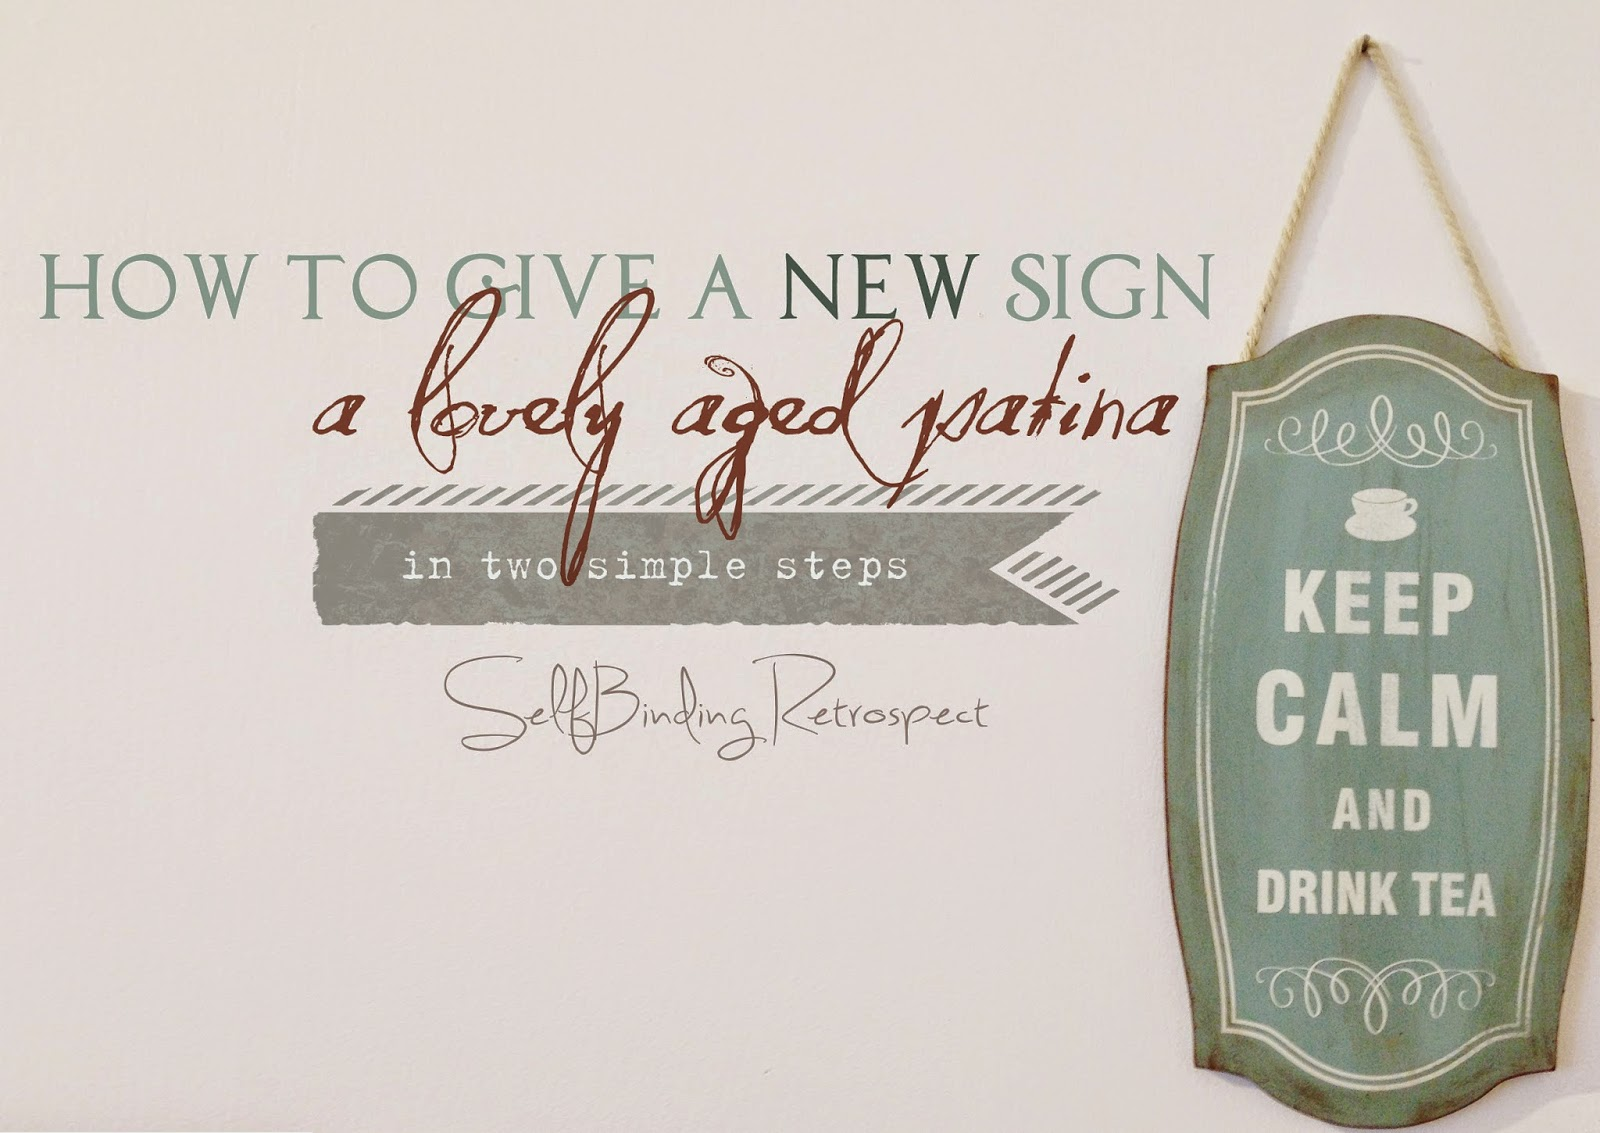 How To Give a New Sign a Lovely Aged Patina in Two Simple Steps - SelfBinding Retrospect by Alanna Rusnak